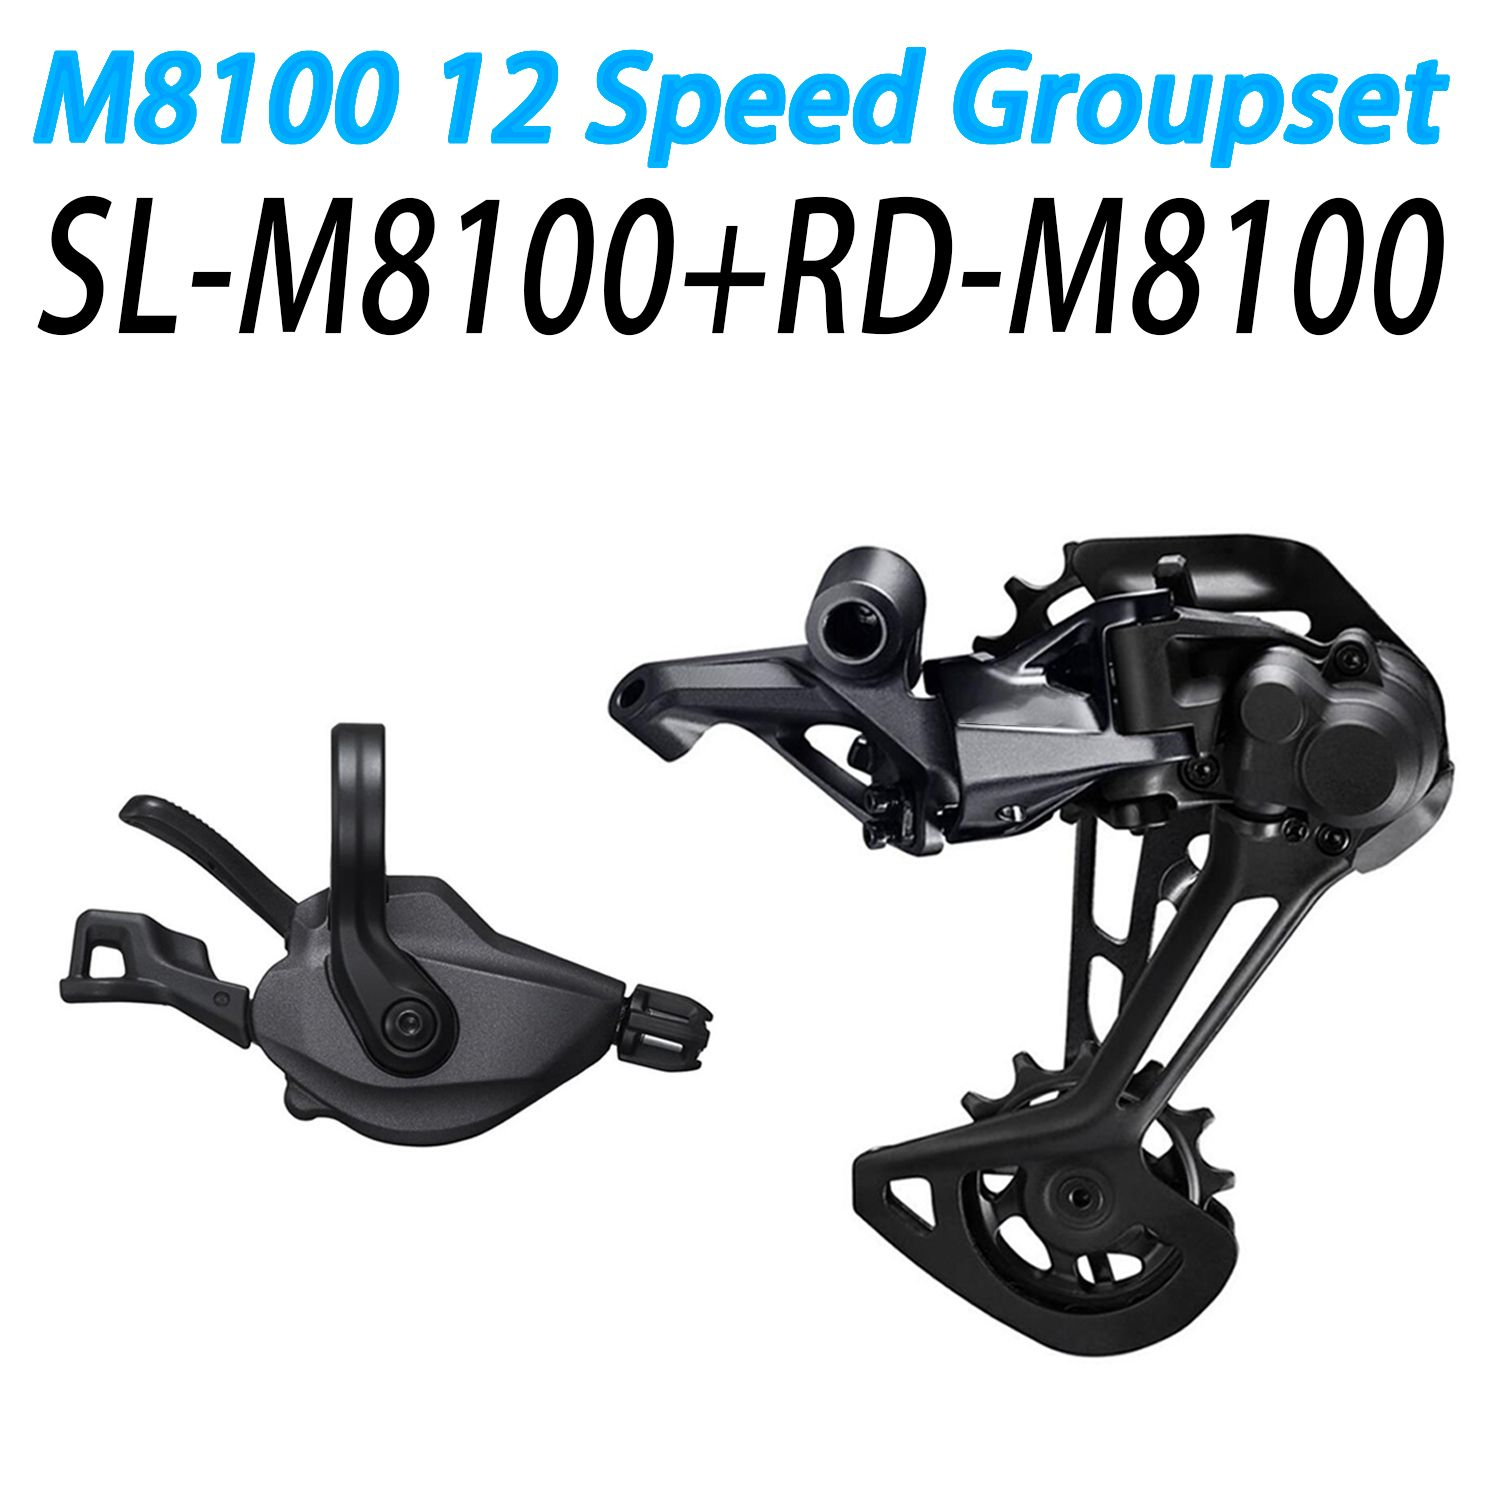 XT M8100 Groupset Mountainbike Groupset 1x12-Speed SL + RD M8100 Schaltwerk m8100 Shifter Hebel